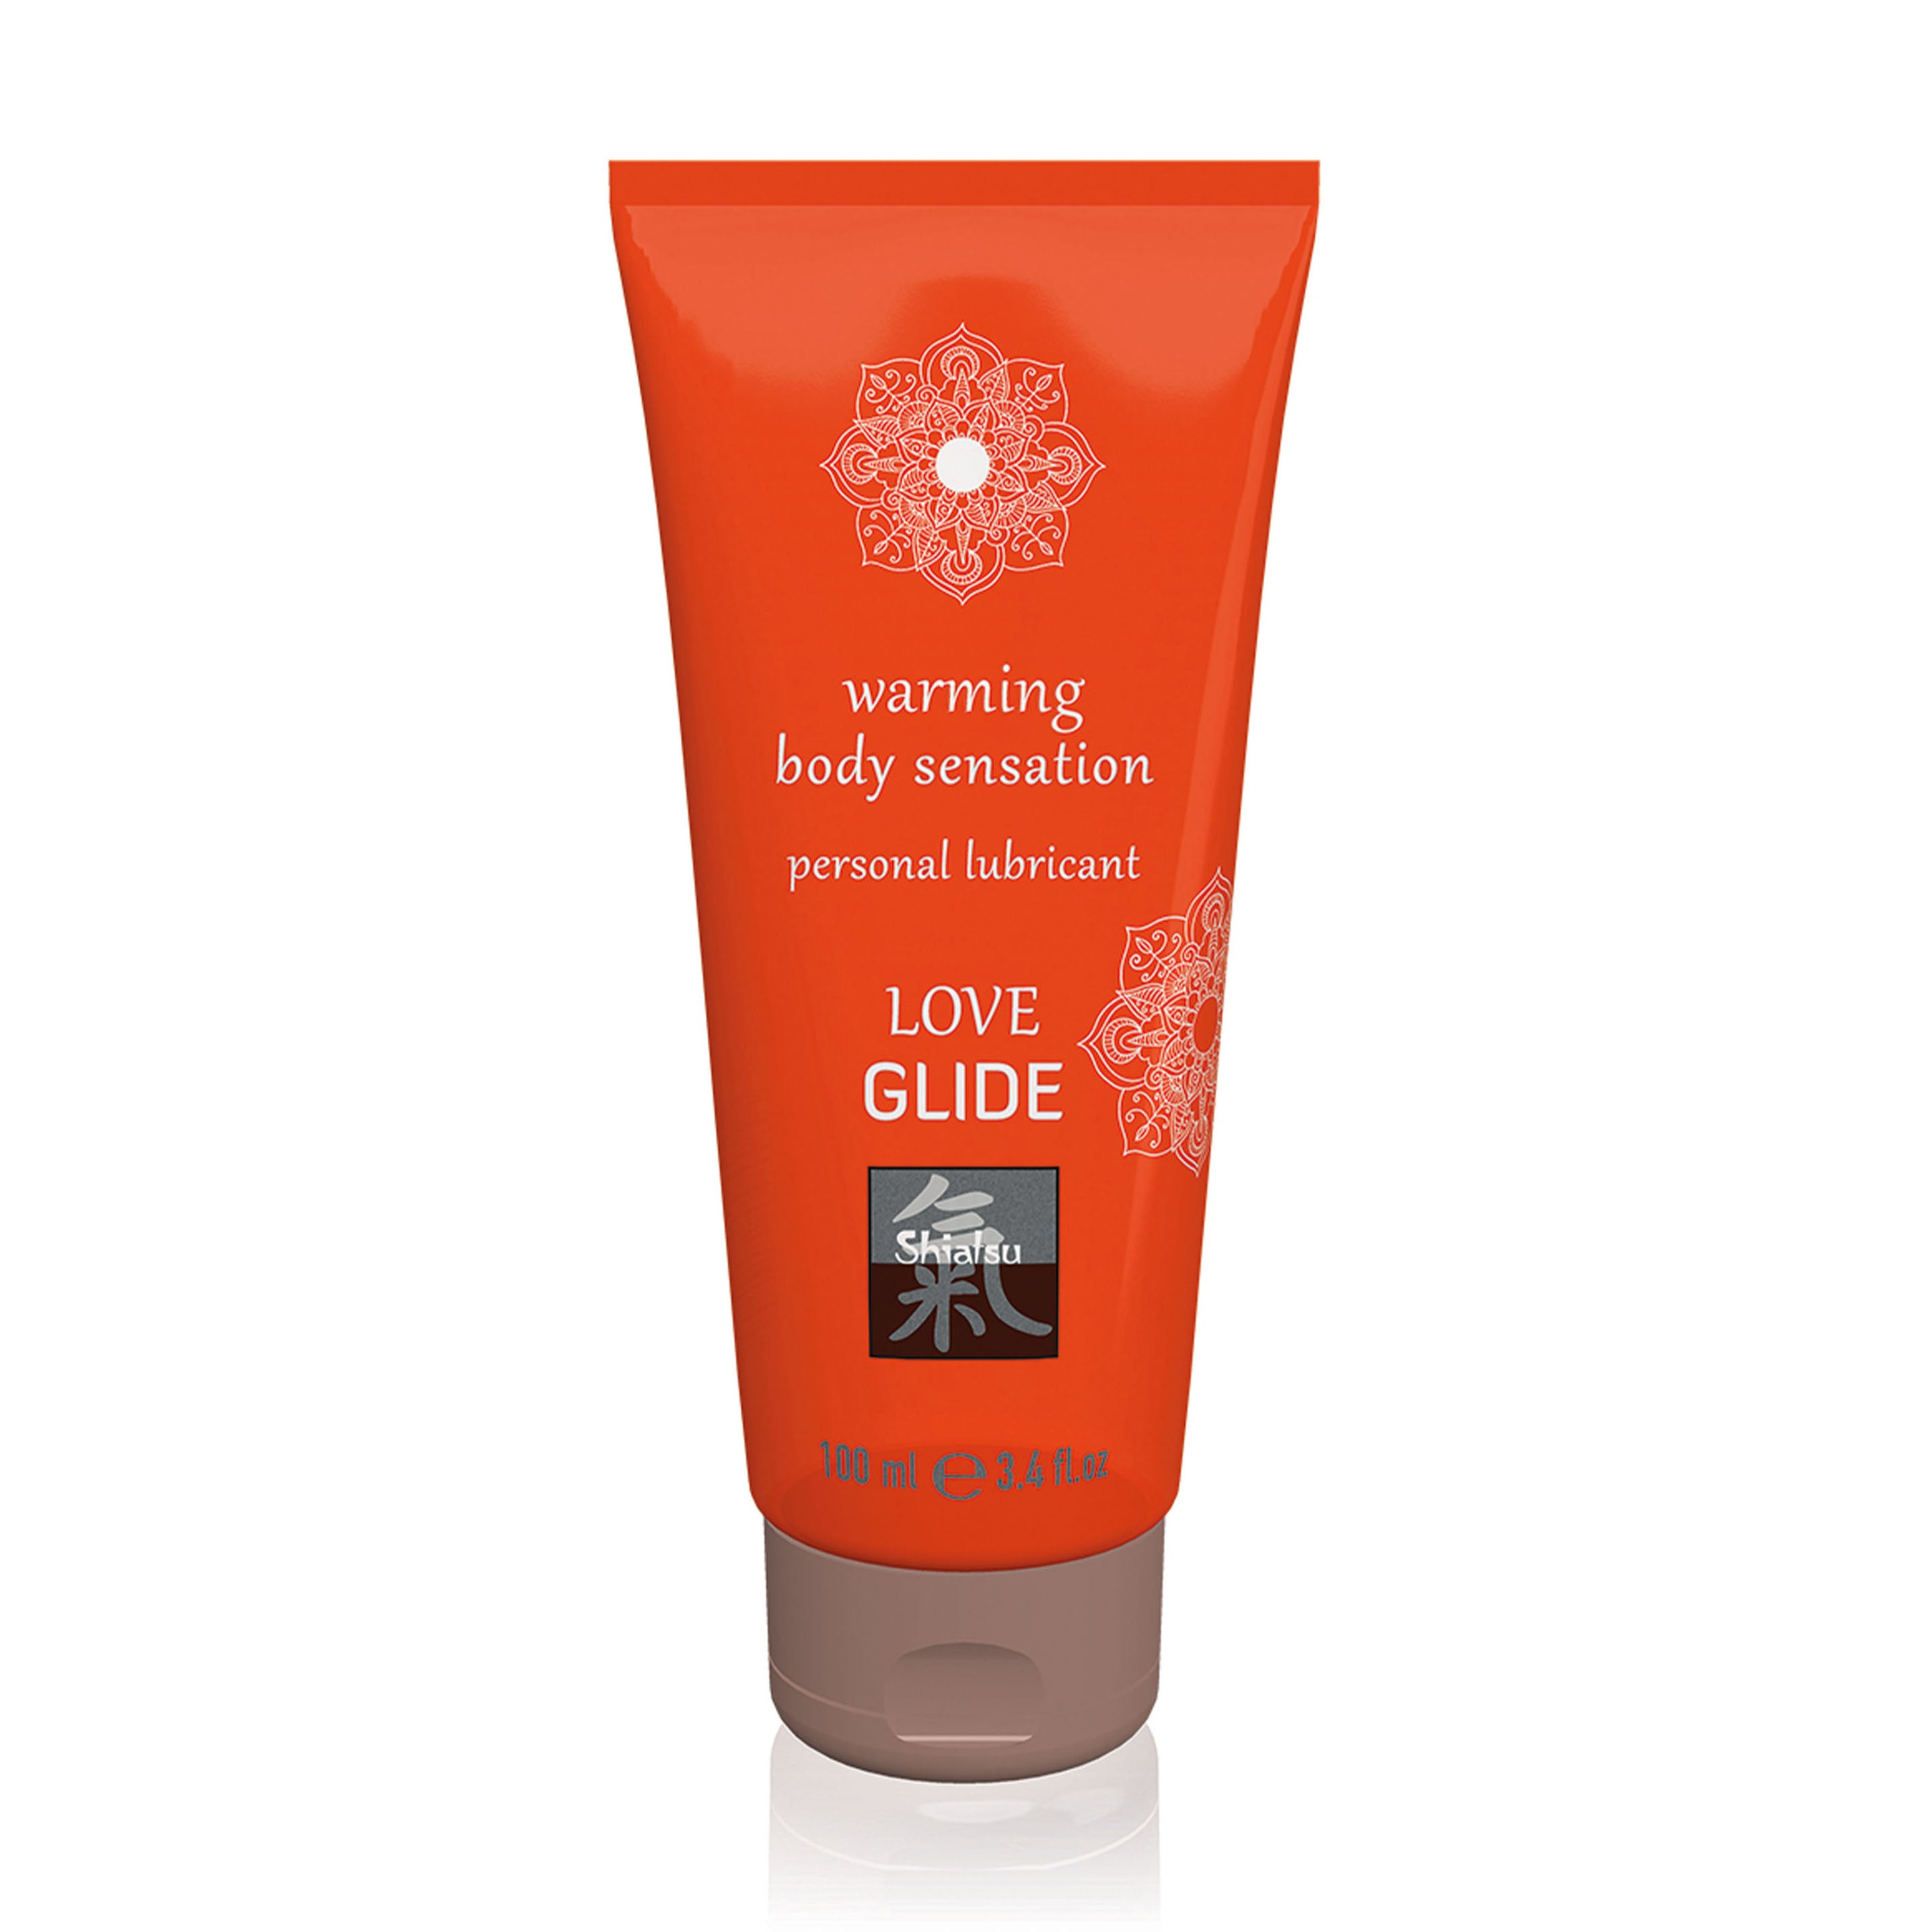 Shiatsu Love Glide Warming Body Sensation 100ml > Relaxation Zone > Lubricants and Oils 75ml, Both, Lubricants and Oils, NEWLY-IMPORTED - So Luxe Lingerie